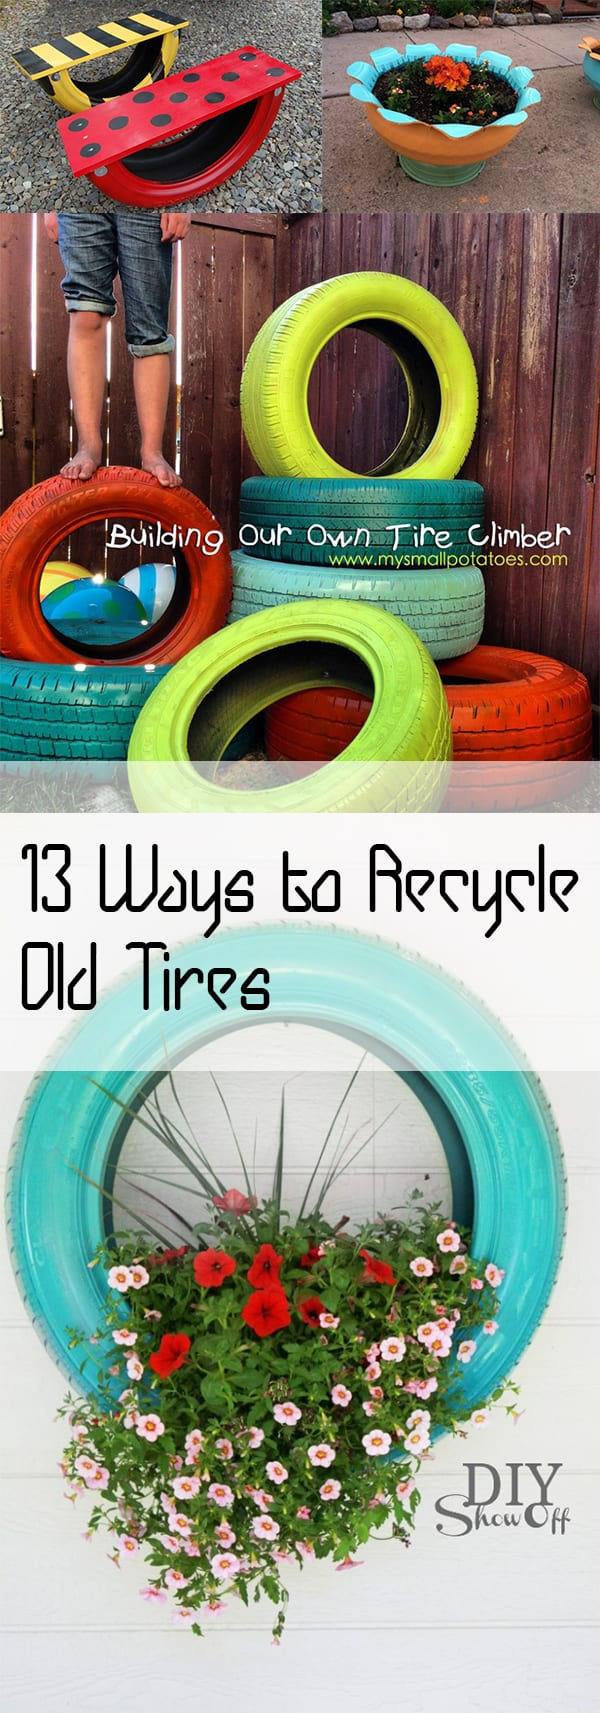 13 Ways To Recycle Old Tires How To Build It